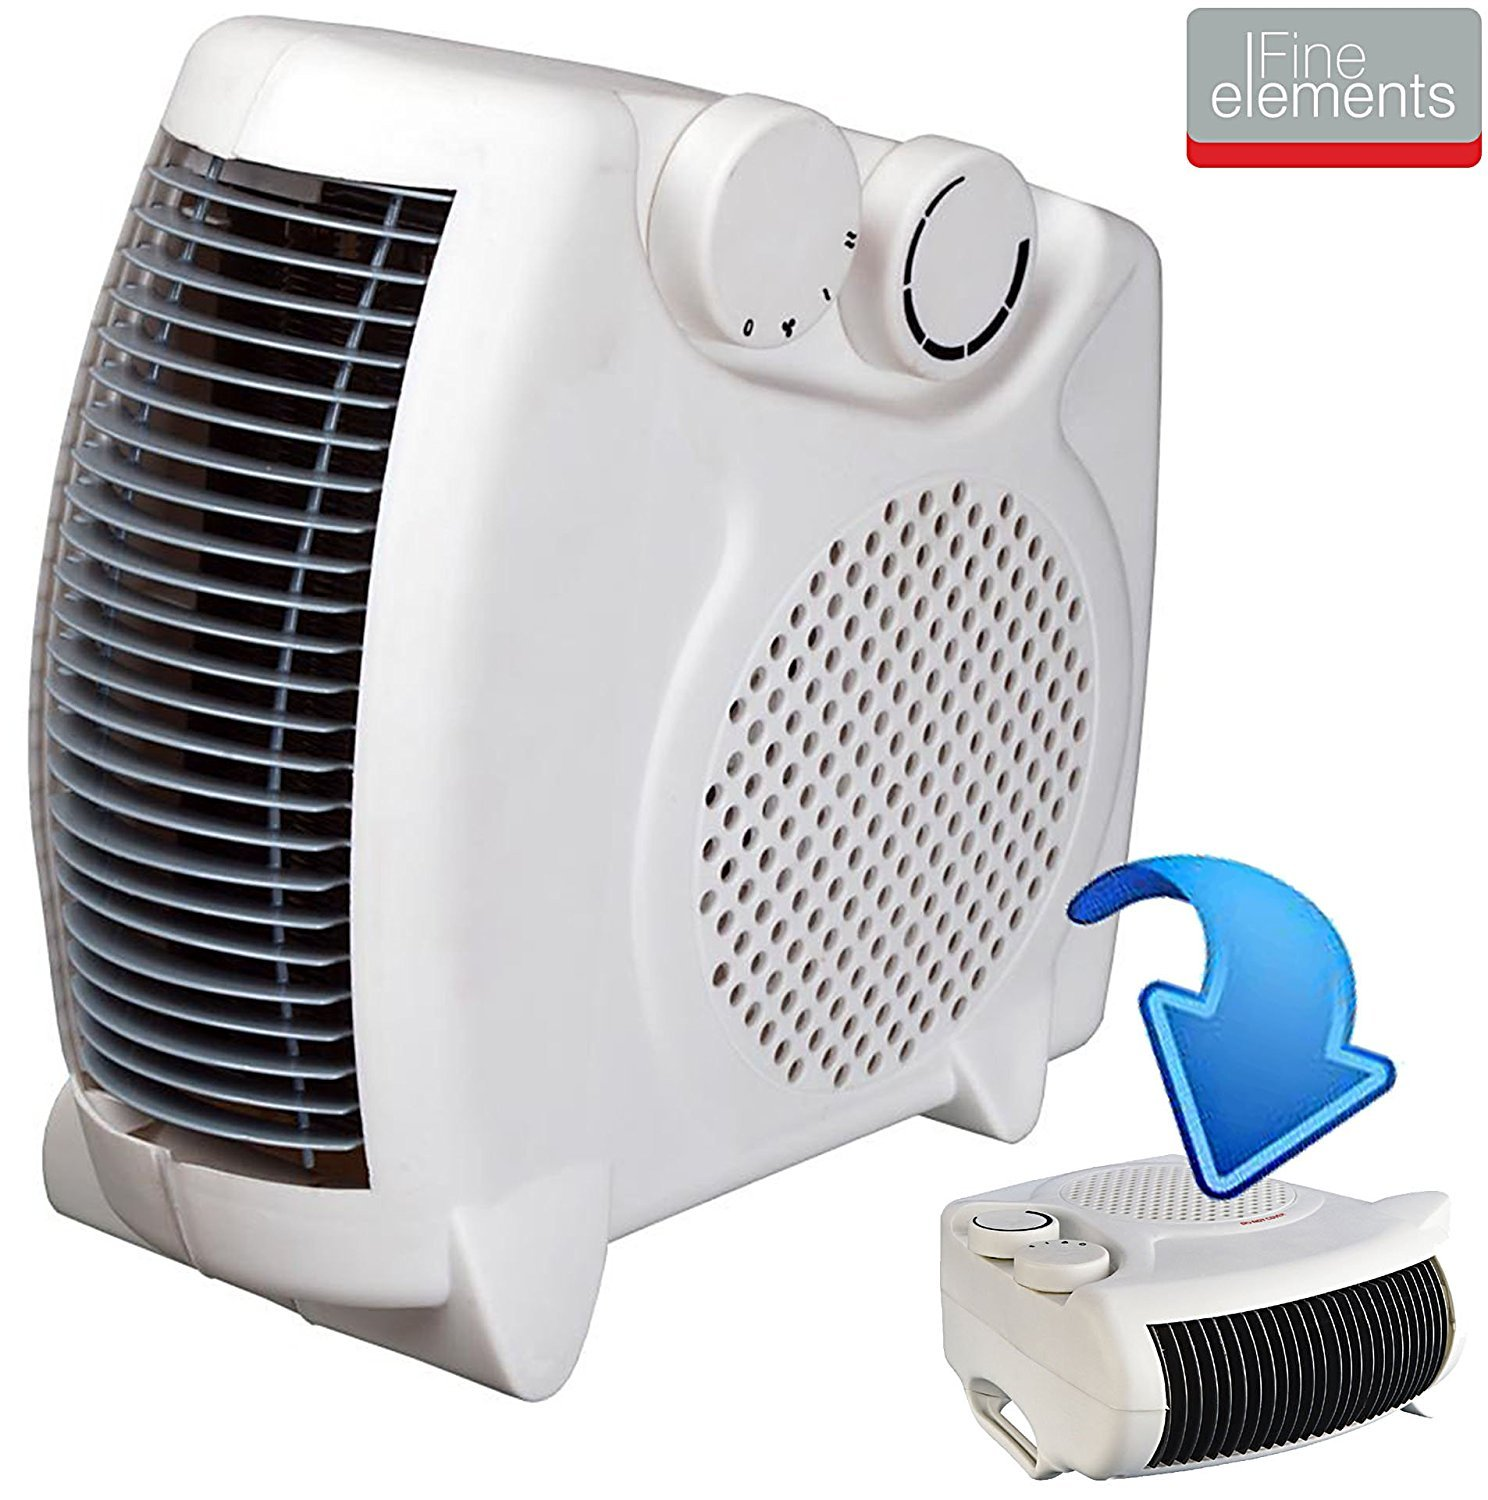 2000W PORTABLE SILENT ELECTRIC FAN HEATER HOT & COOL UPRIGHT BRAND NEW IN BOX Guilty Gadgets 2000W FAN HEATER